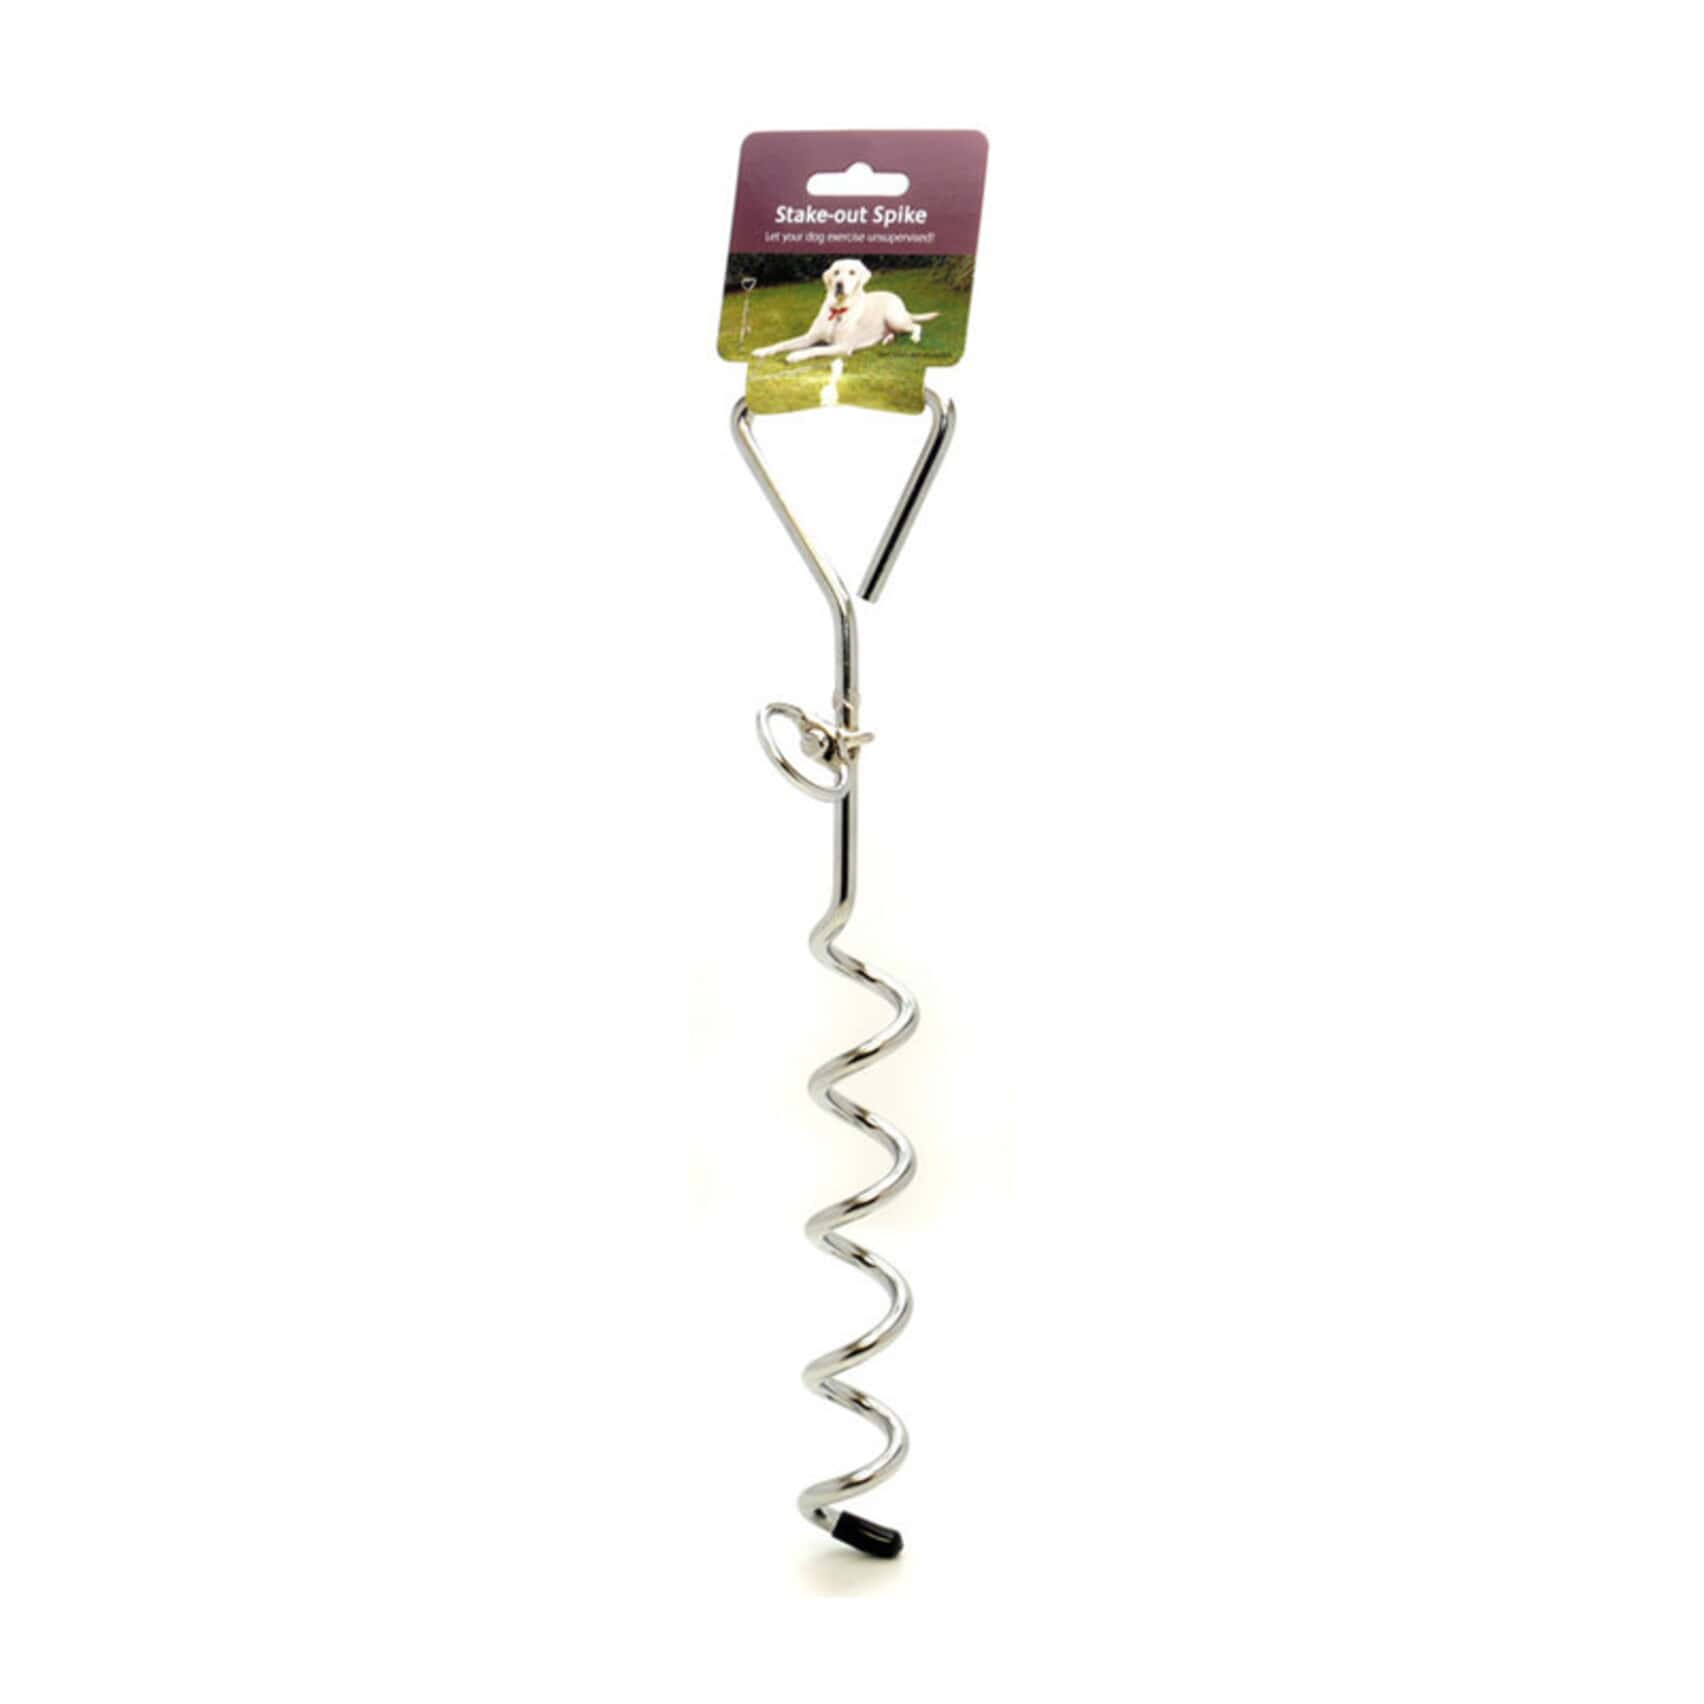 Rosewood Xtra Strong Stake Out Spike for Dogs